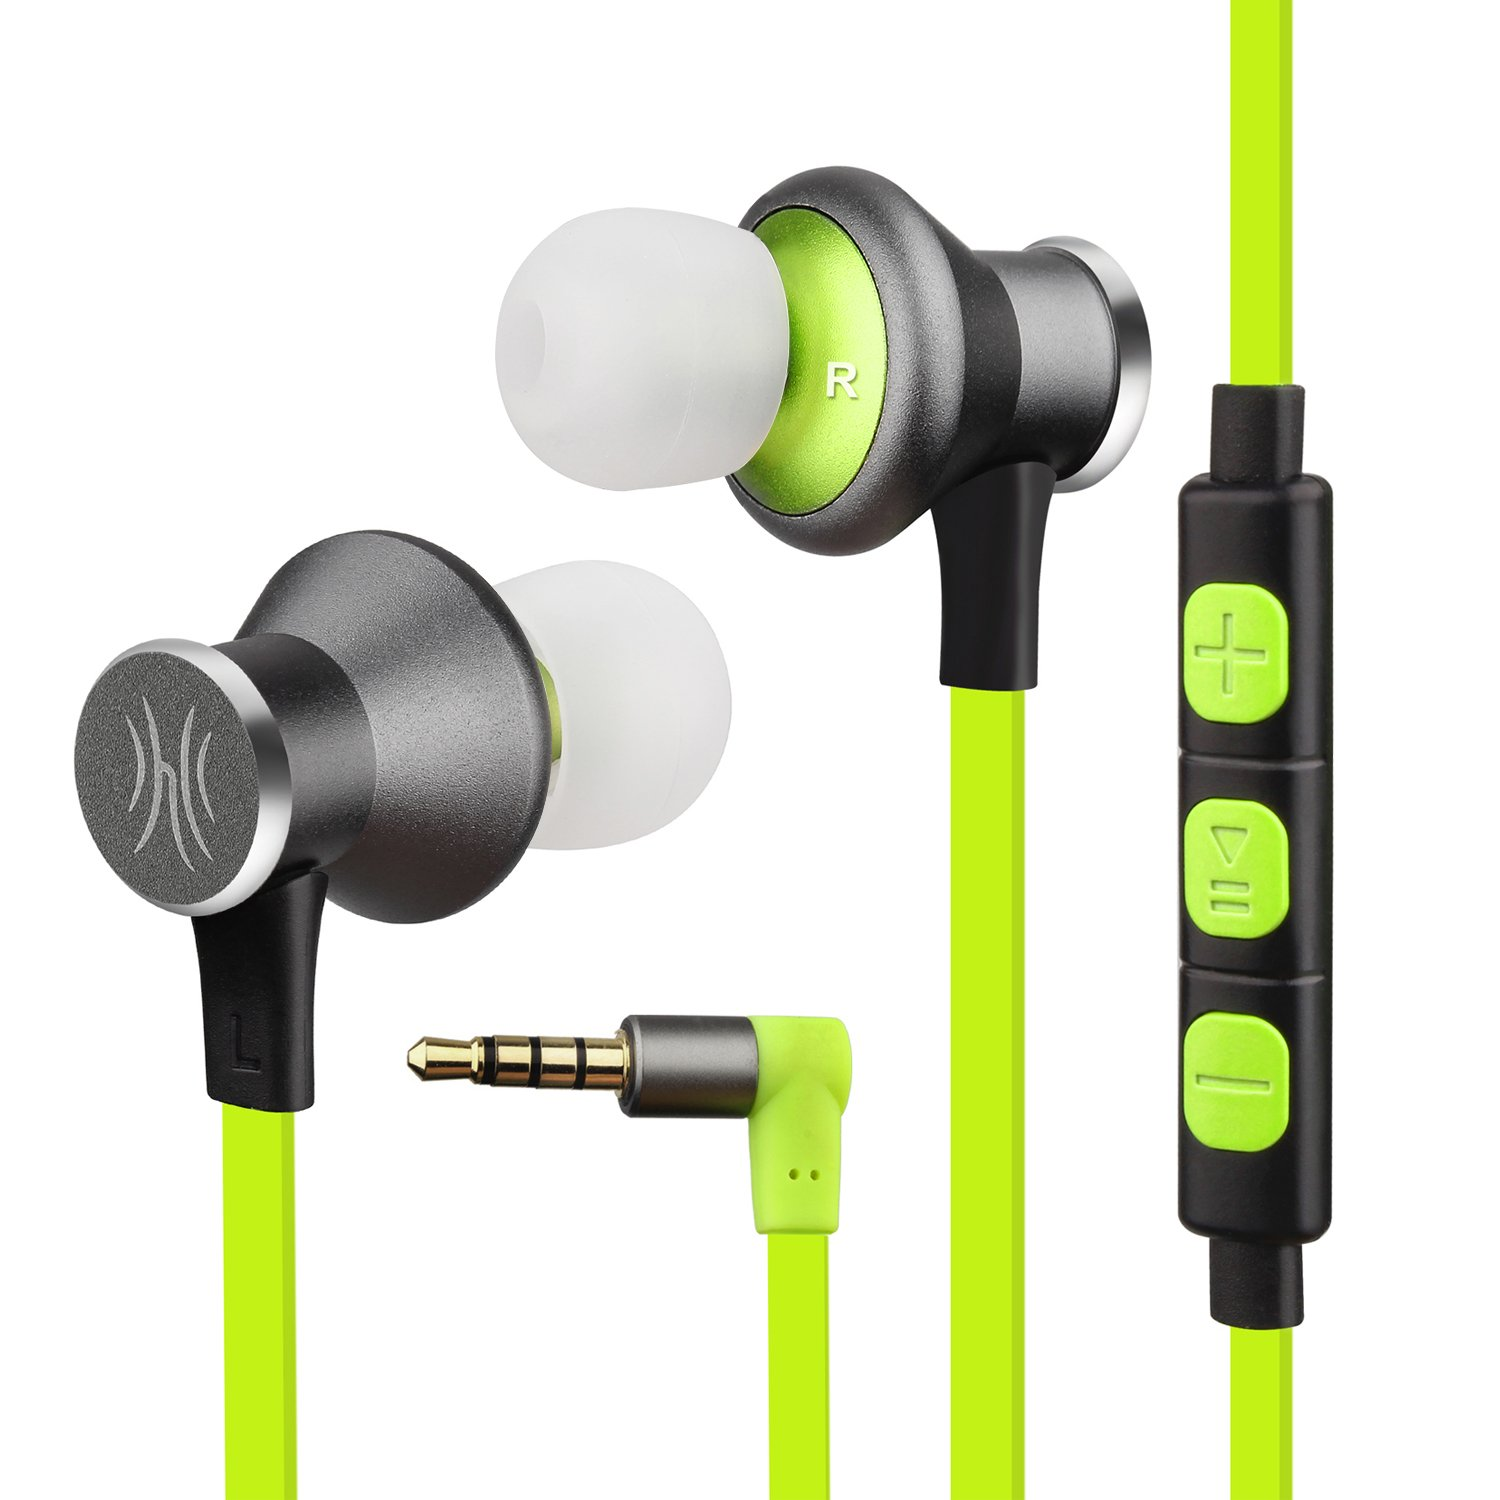 OneOdio Sports Earbuds in-Ear Headphones with Mic – Magnetic Wired Earphones, Tangle Free Sweatproof Headsets for Running/Gym/ Exercise. (Fluorescent Green)